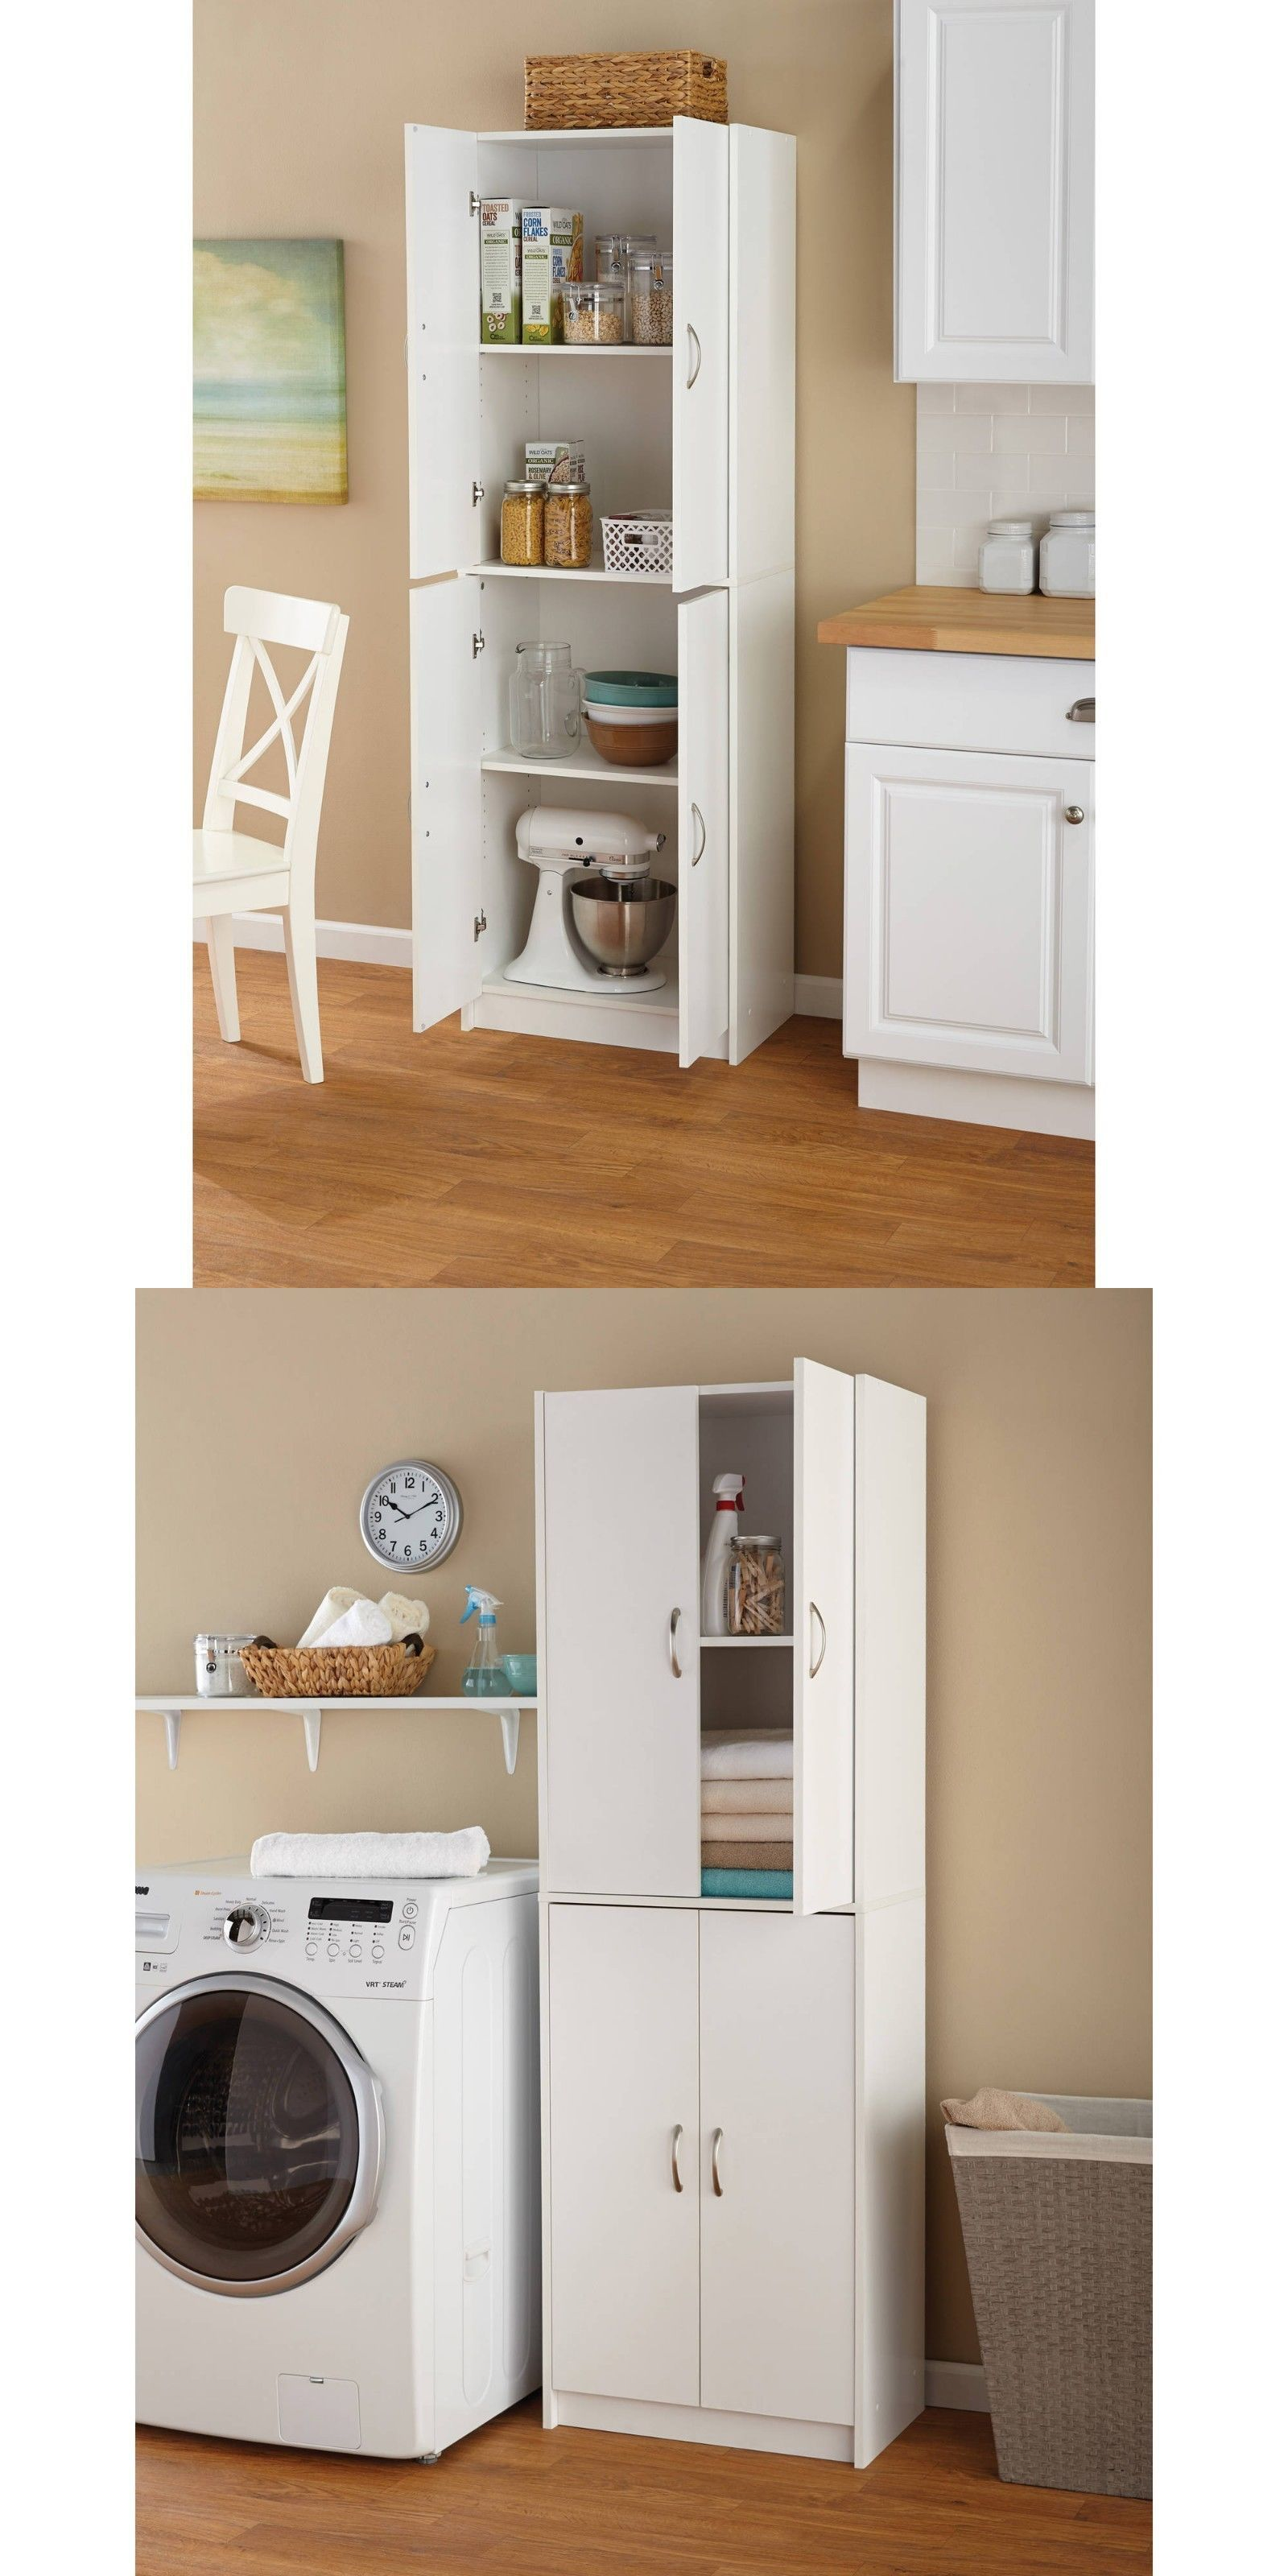 Cabinets And Cupboards 20487 Tall Kitchen Pantry Cabinet Freestanding Shelf White Cupboard Storage With Images Kitchen Pantry Storage Cabinet